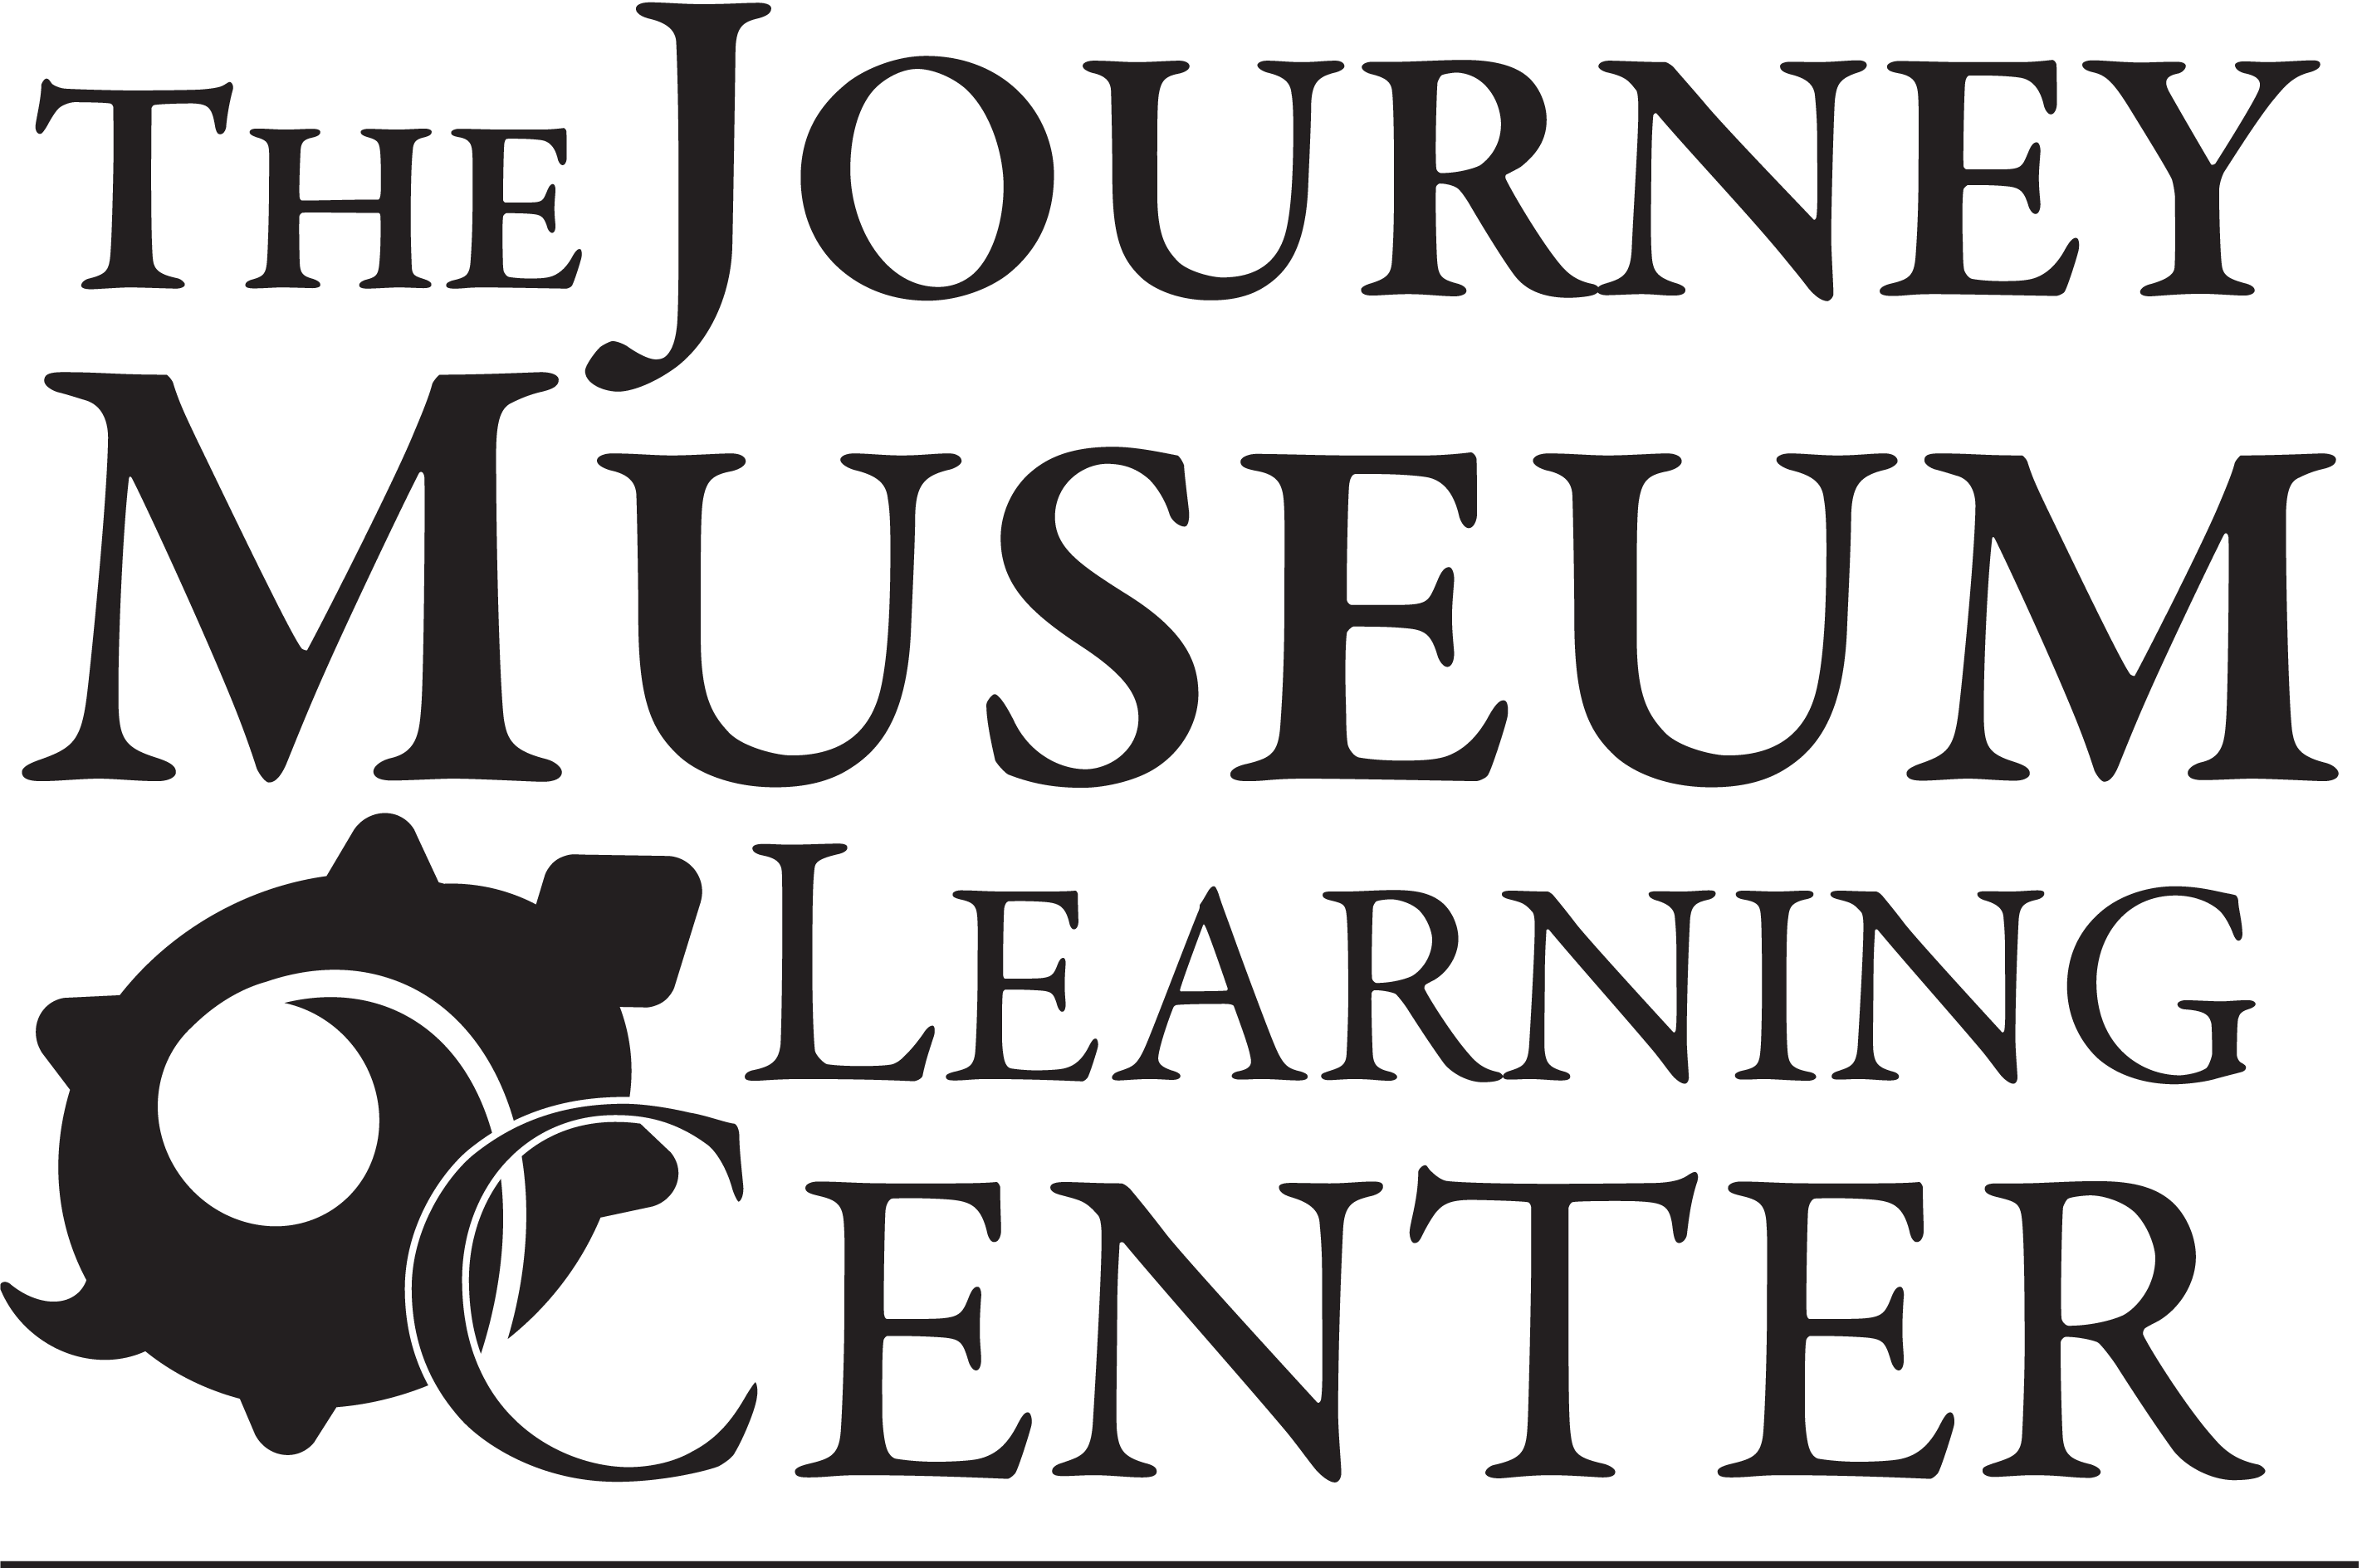 Funder: The Journey Museum Learning Center